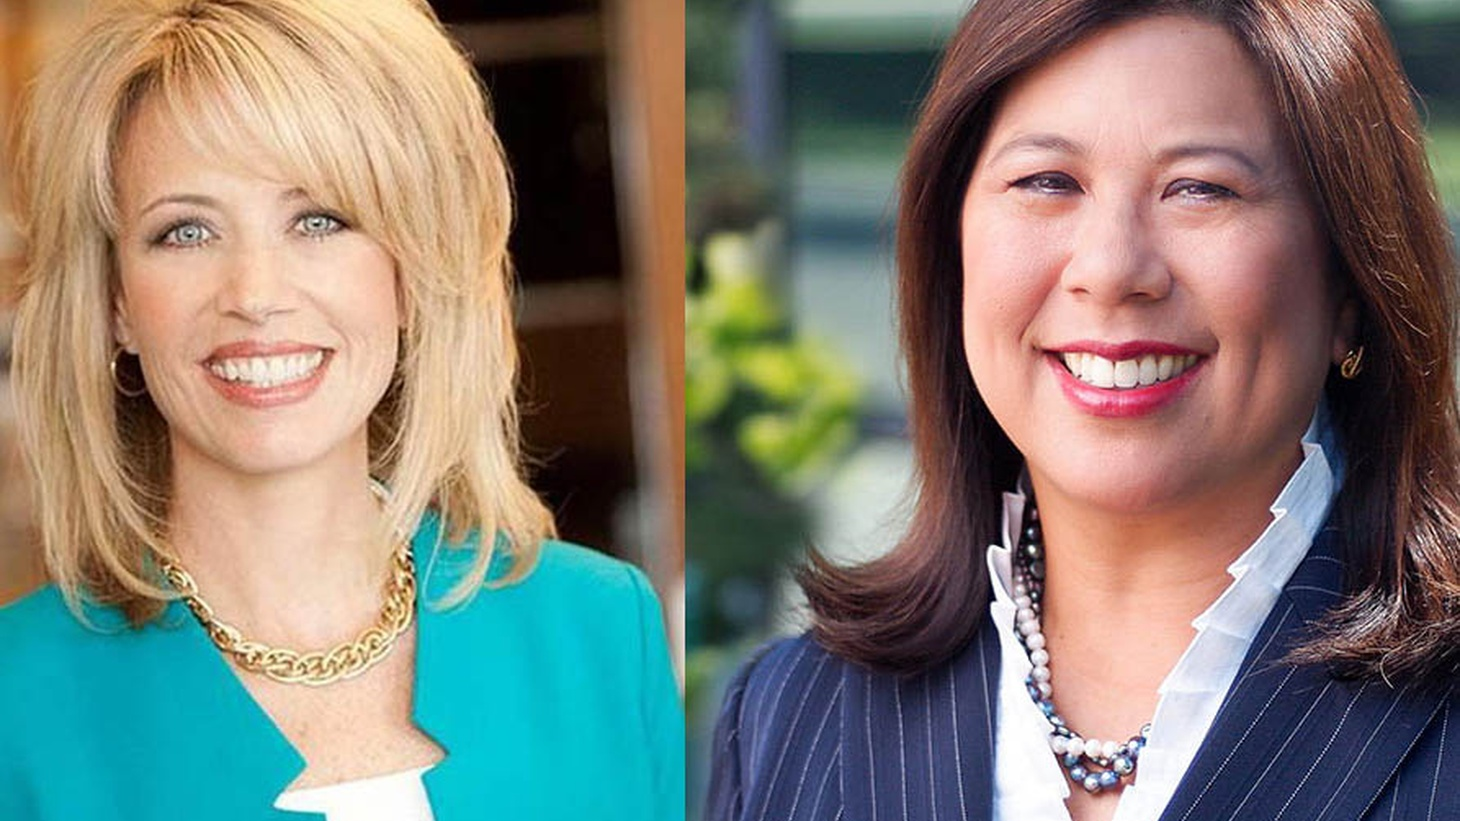 One of the powerful statewide elected officers many voters have never heard of is the State Controller—who pays the bills and has the authority to audit other state departments. Democrat John Chiang is termed out and we'll hear from the candidates to replace him: Republican Ashley Swearengin, and Democrat Betty Yee.